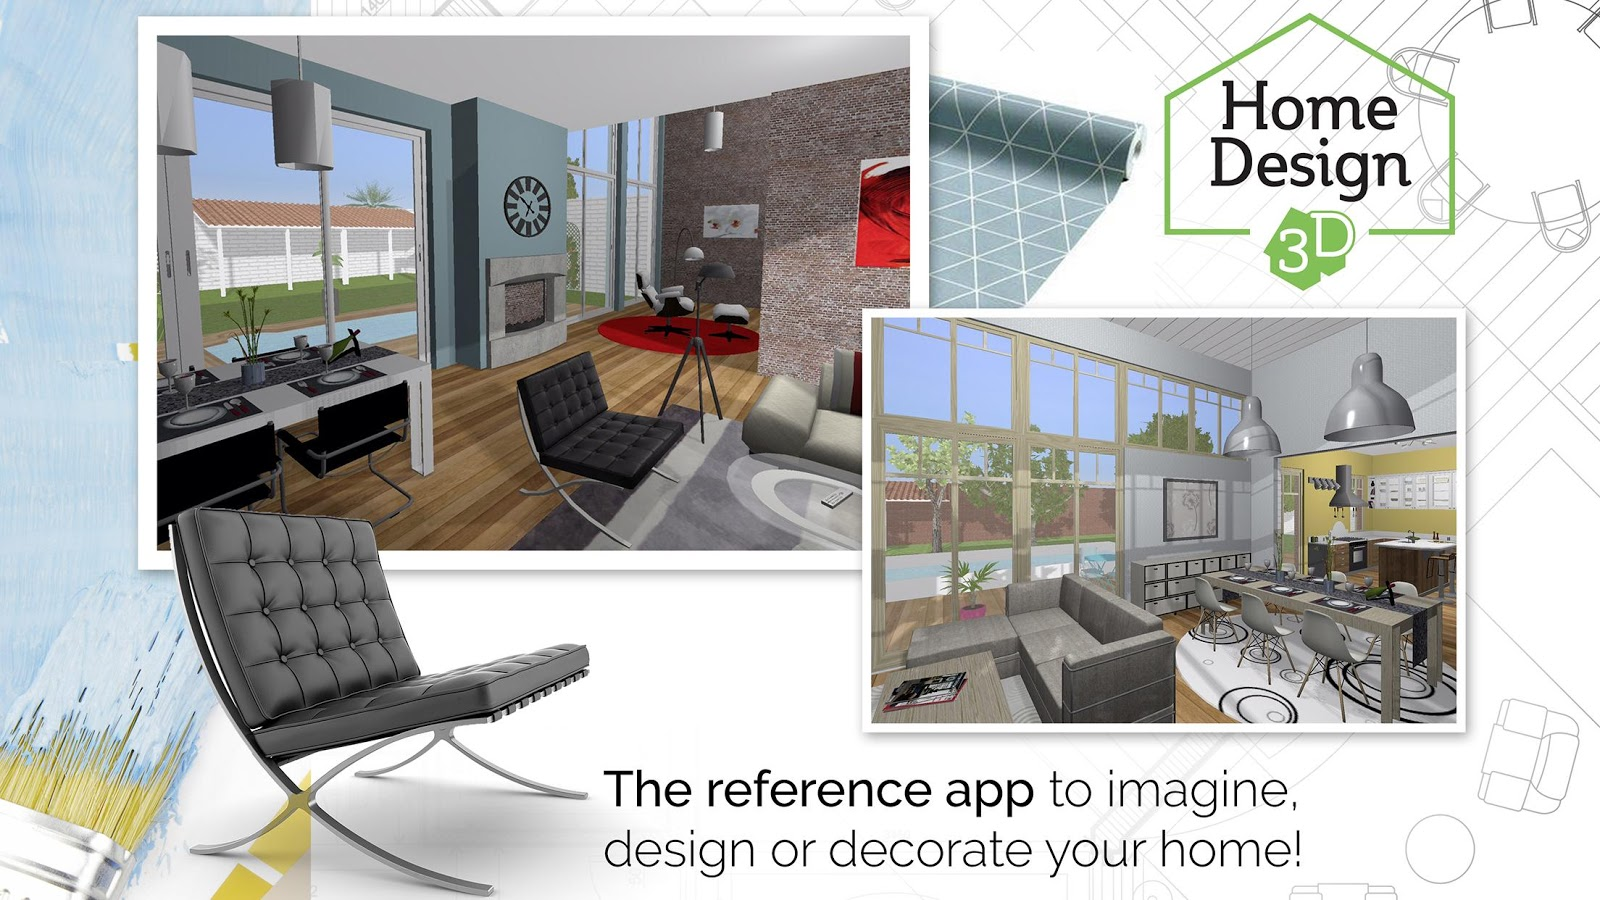 Home design 3d freemium android google play Portfolio home plans